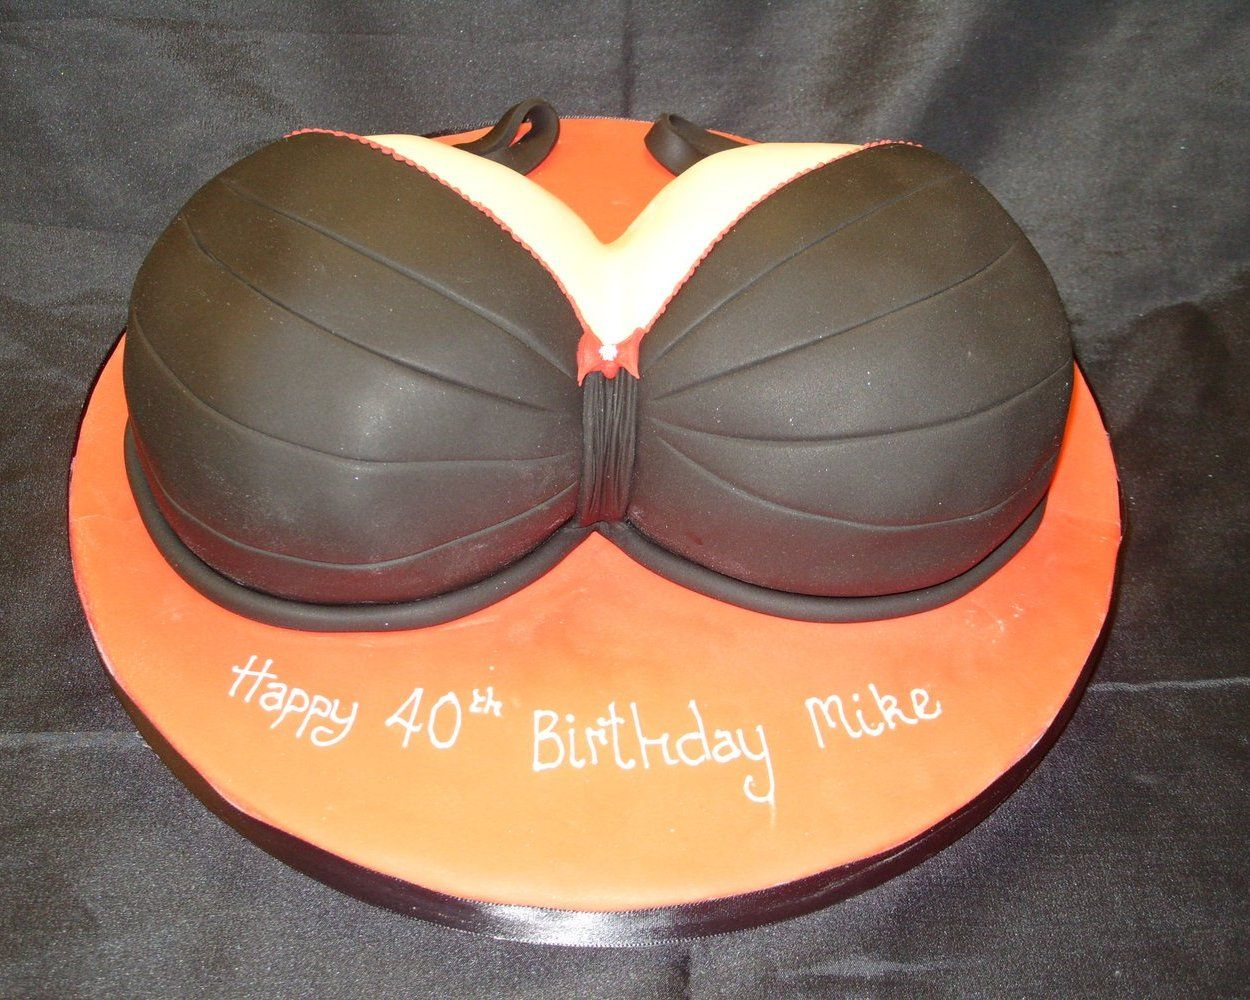 birthday cakes for men birthday cakes men celebration cake on birthday cake pics for guys